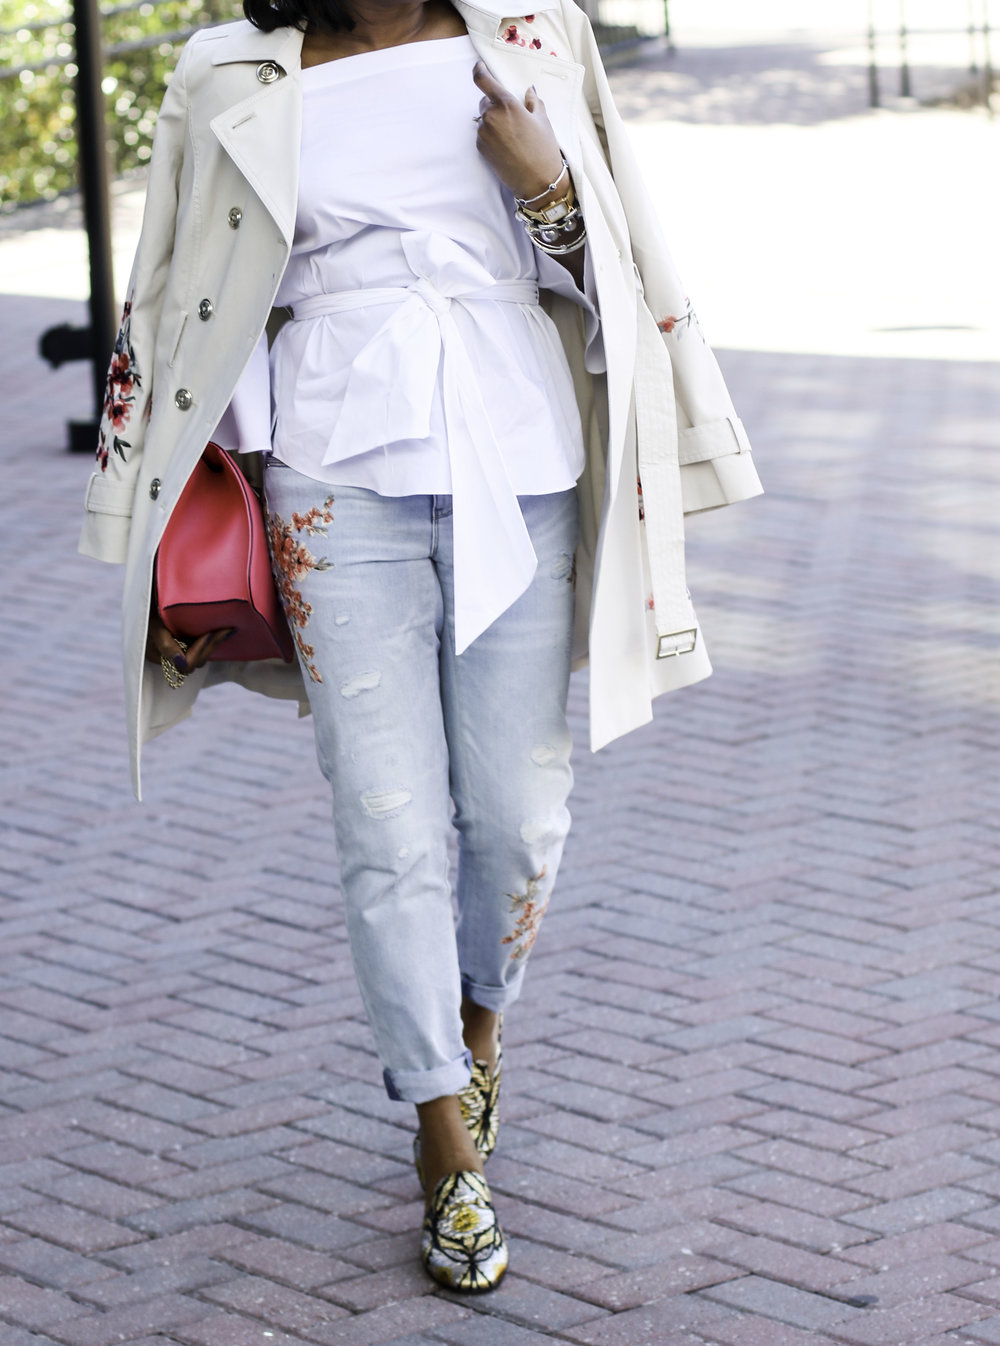 WHITE OFF THE SHOULER BLOUSE WITH FLORAL PRINT JEANS, AND TRENCH COAT.jpg